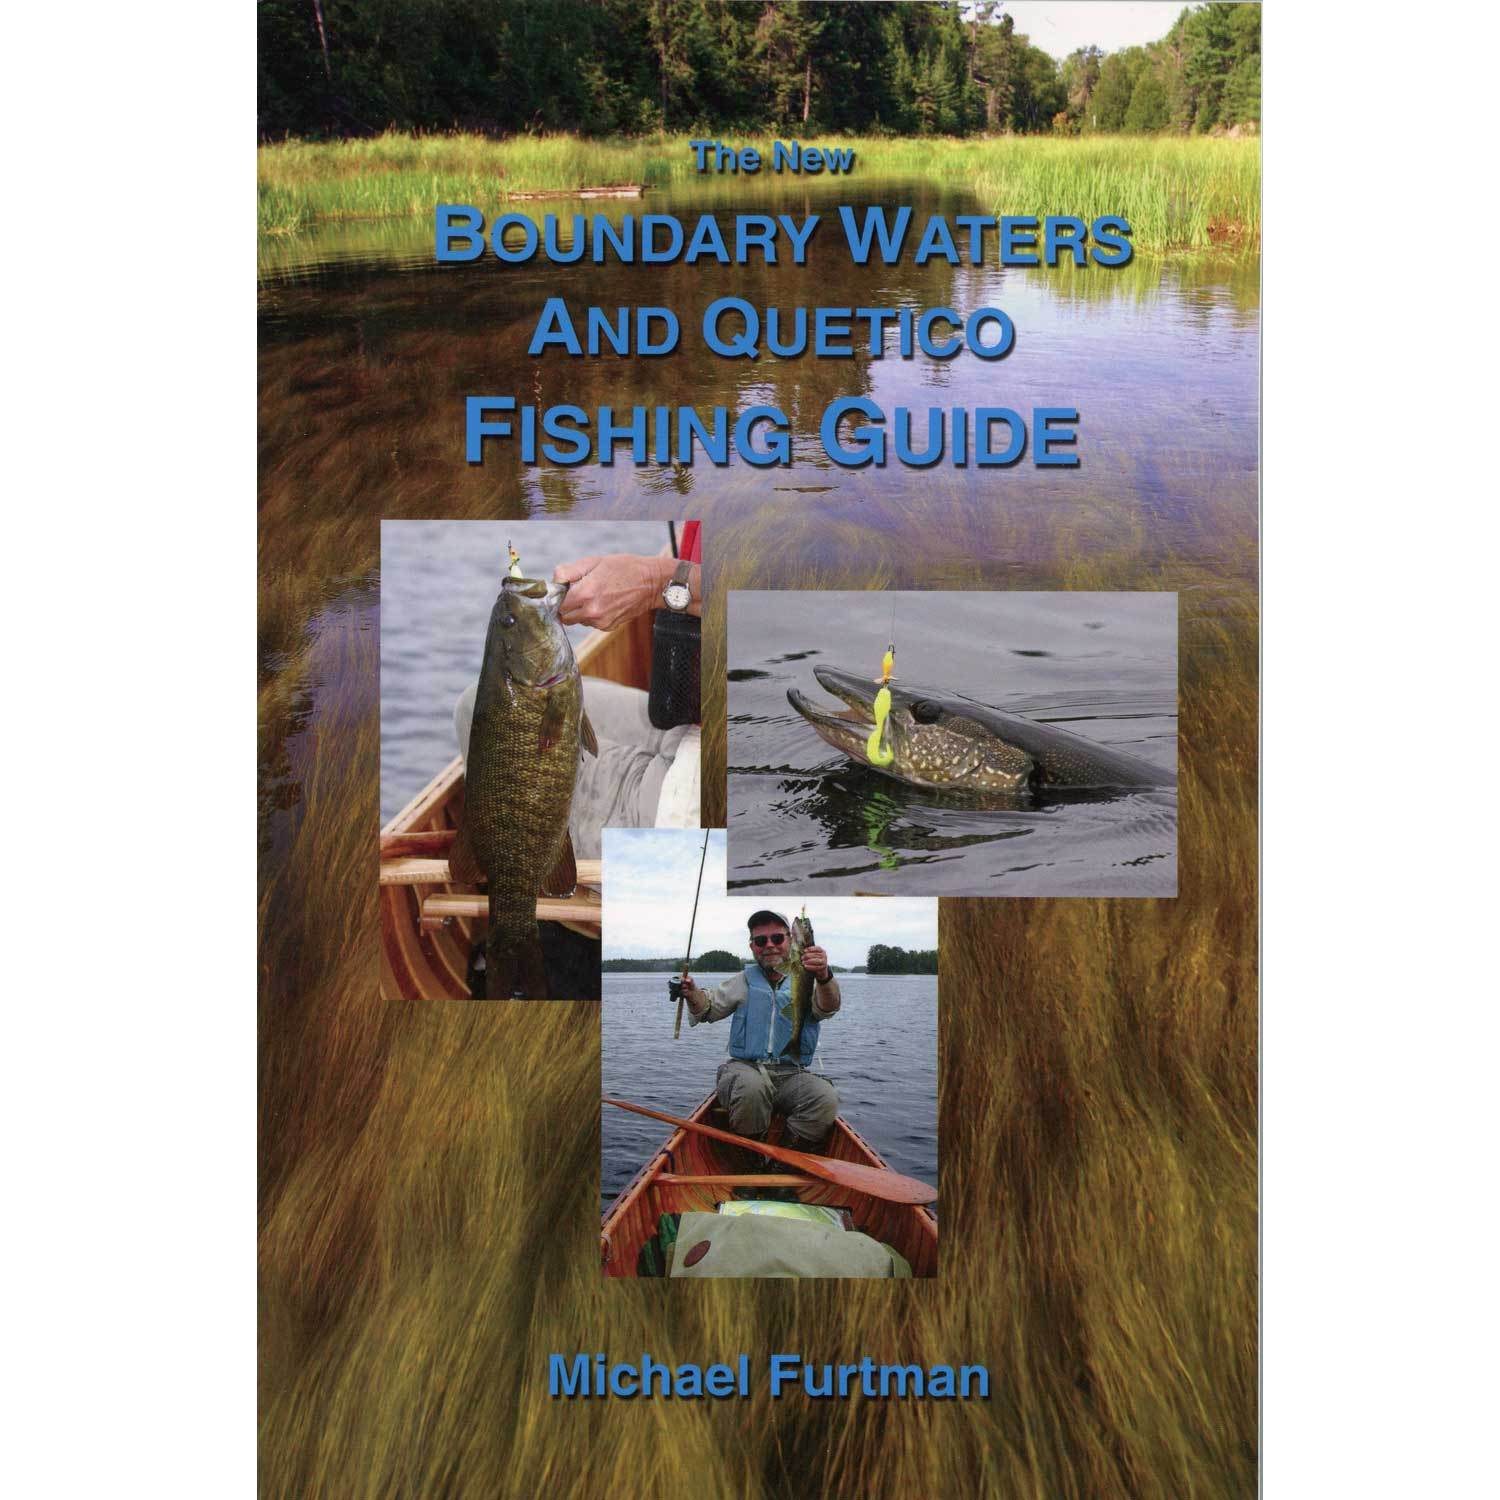 The new boundary waters and quetico fishing guide by for Boundary waters fishing